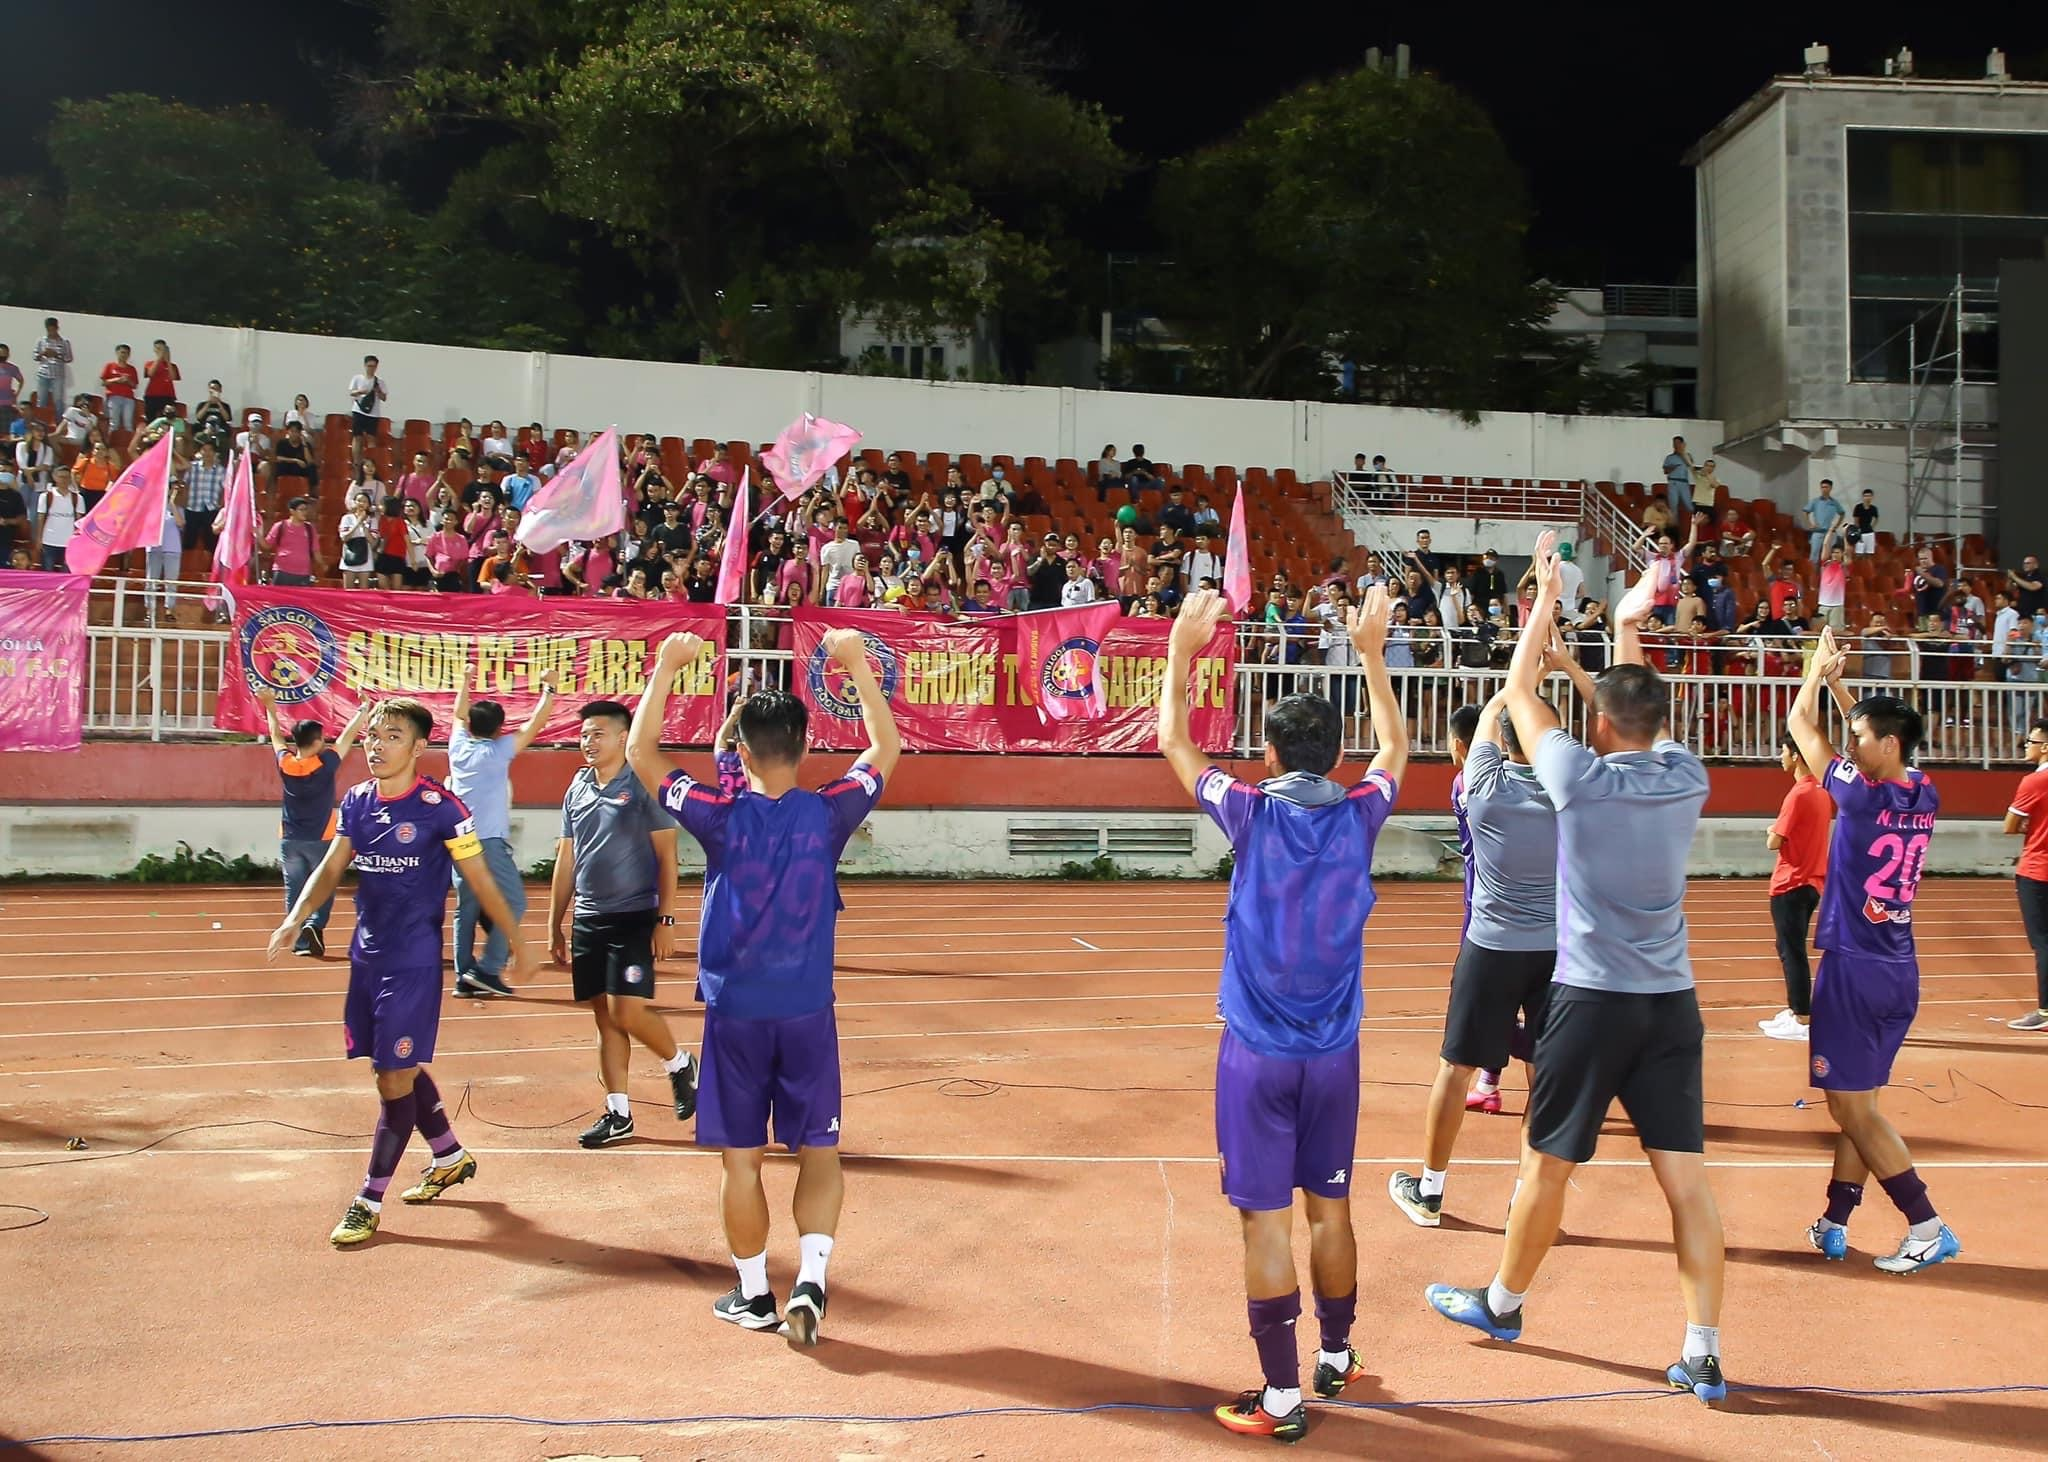 <em>Players of Saigon FC wave at supporters after their game against Ho Chi Minh City FC in the V-League 1's fourth round in Ho Chi Minh City, June 12, 2020. Photo:</em> Dang Hoang / Tuoi Tre Contributor